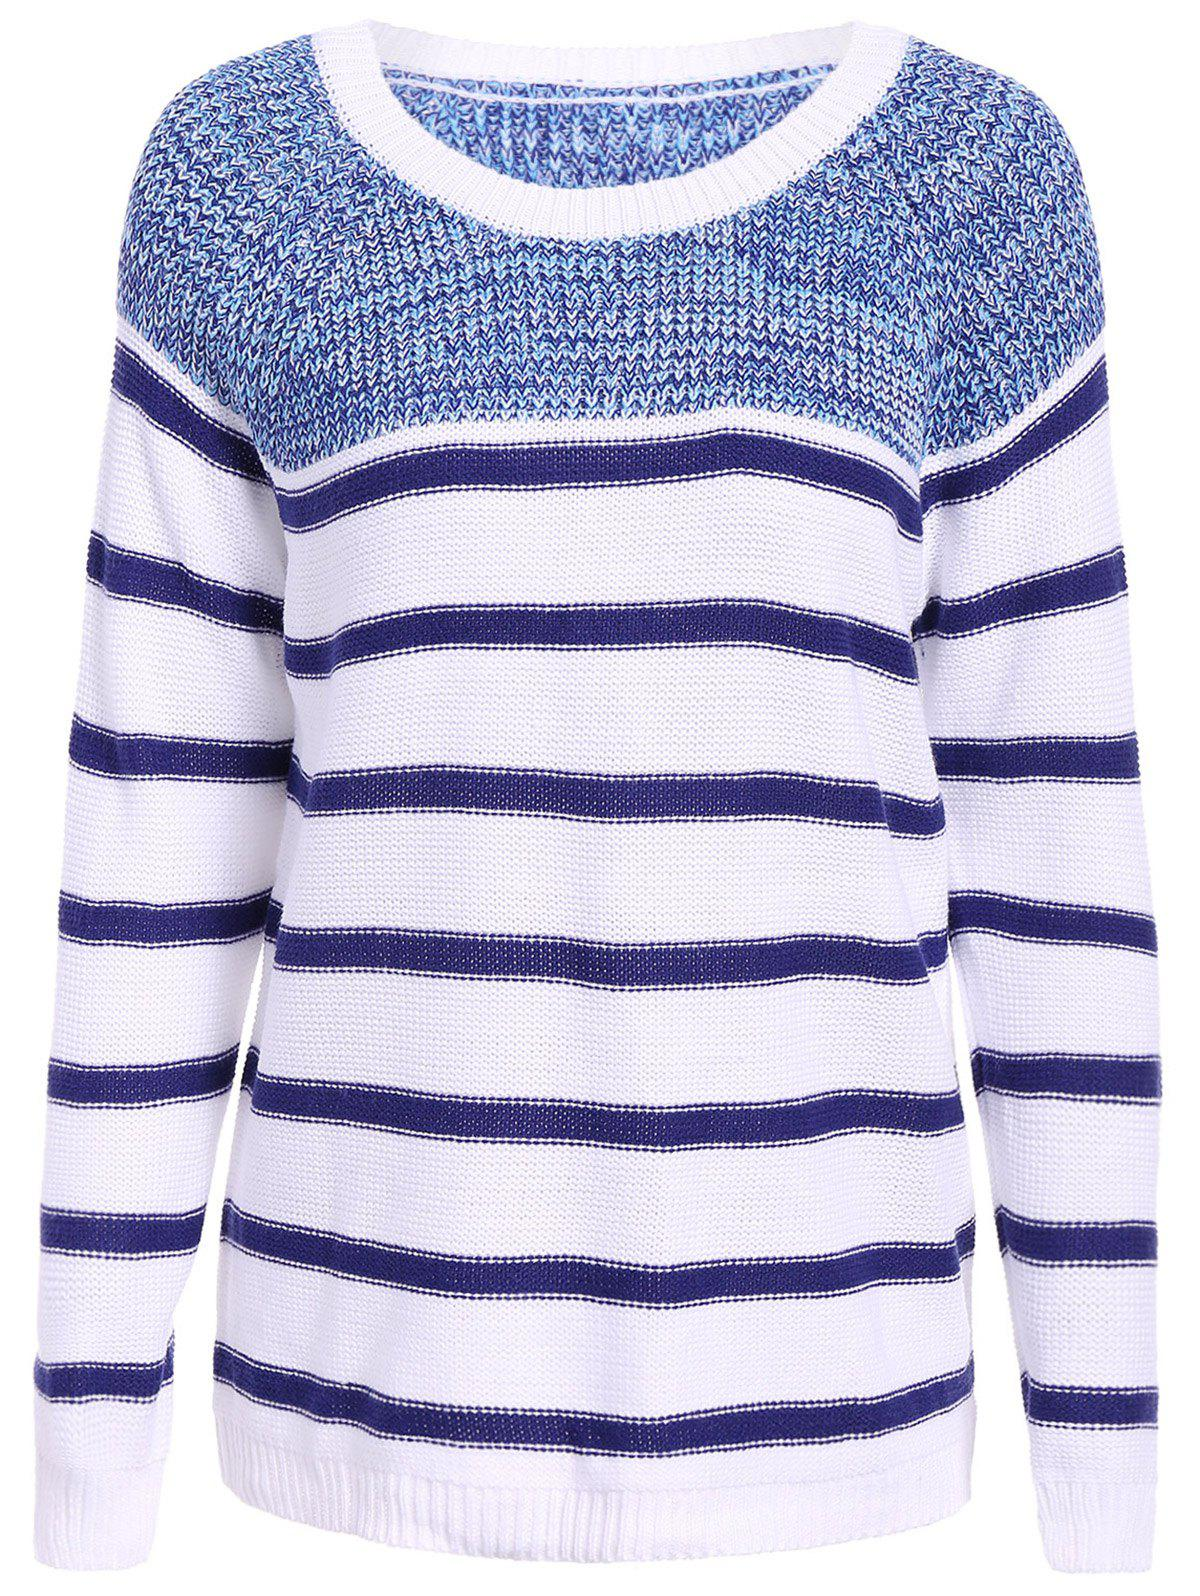 Casual Round Collar Stripe Print Long Sleeve Women's Sweater - BLUE/WHITE ONE SIZE(FIT SIZE XS TO M)